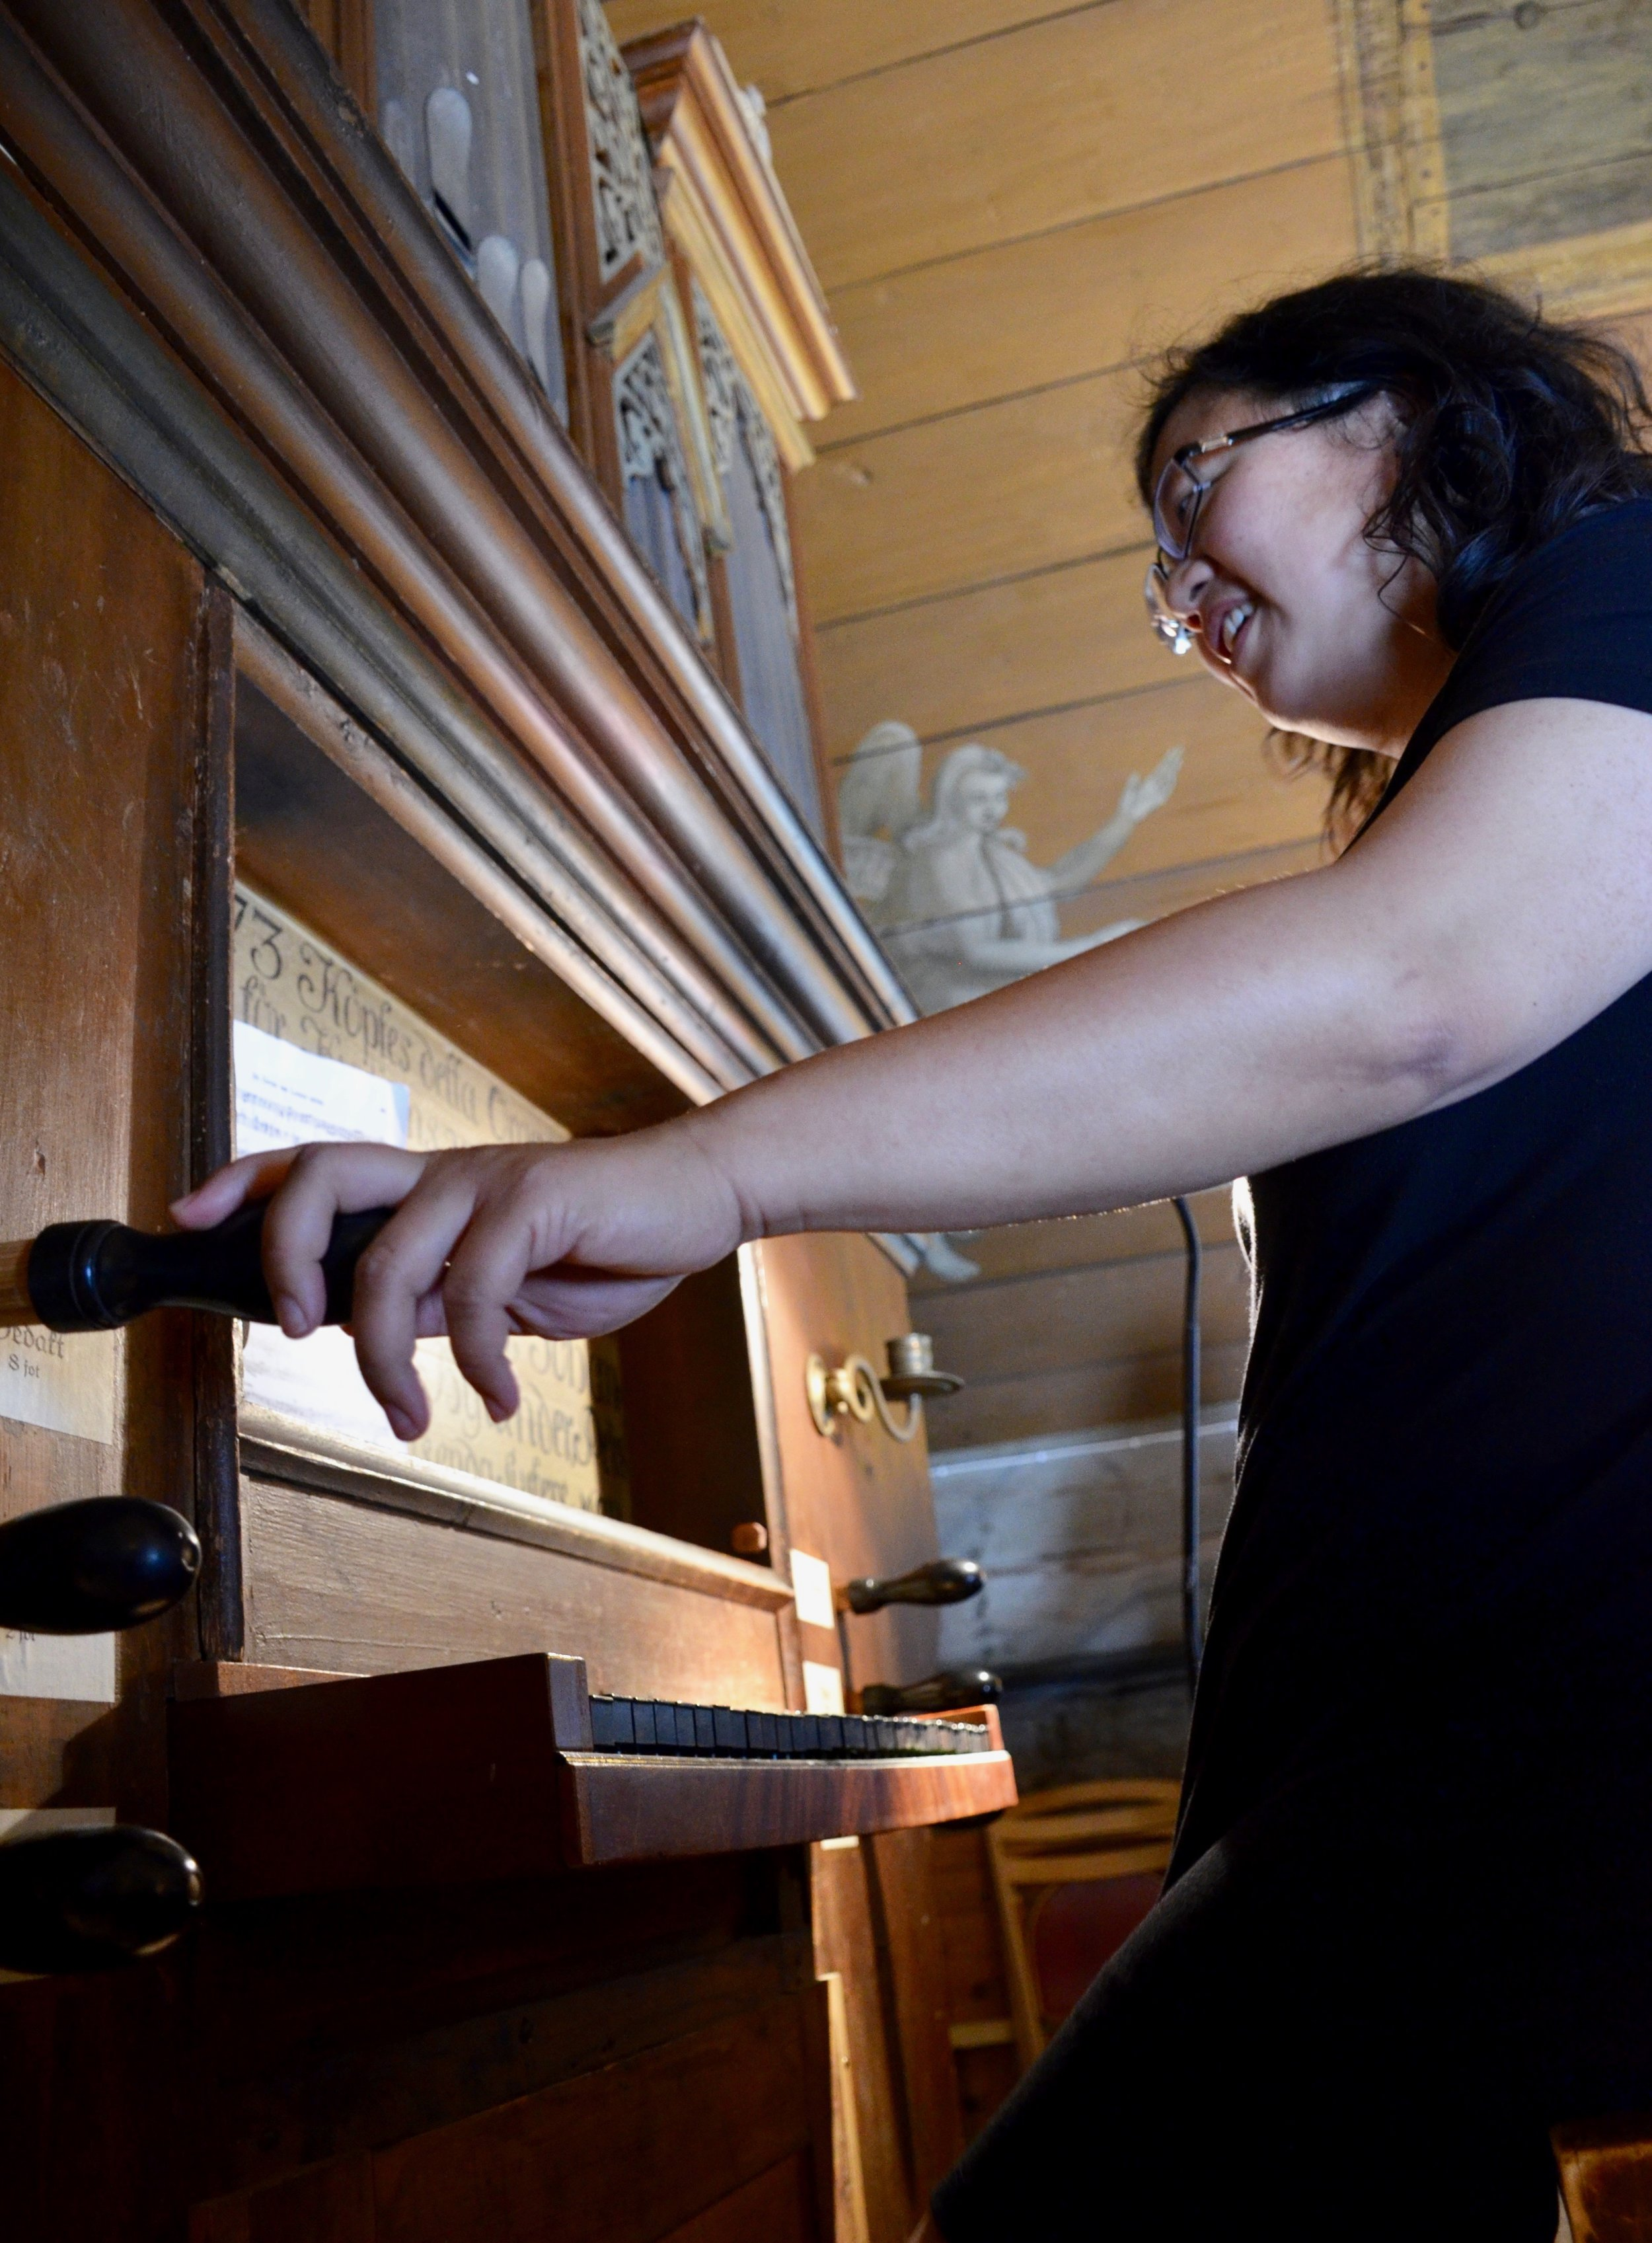 Jennifer Hsiao plays the historic organ in the 1652 chapel, Kulturen, Lund, Sweden.